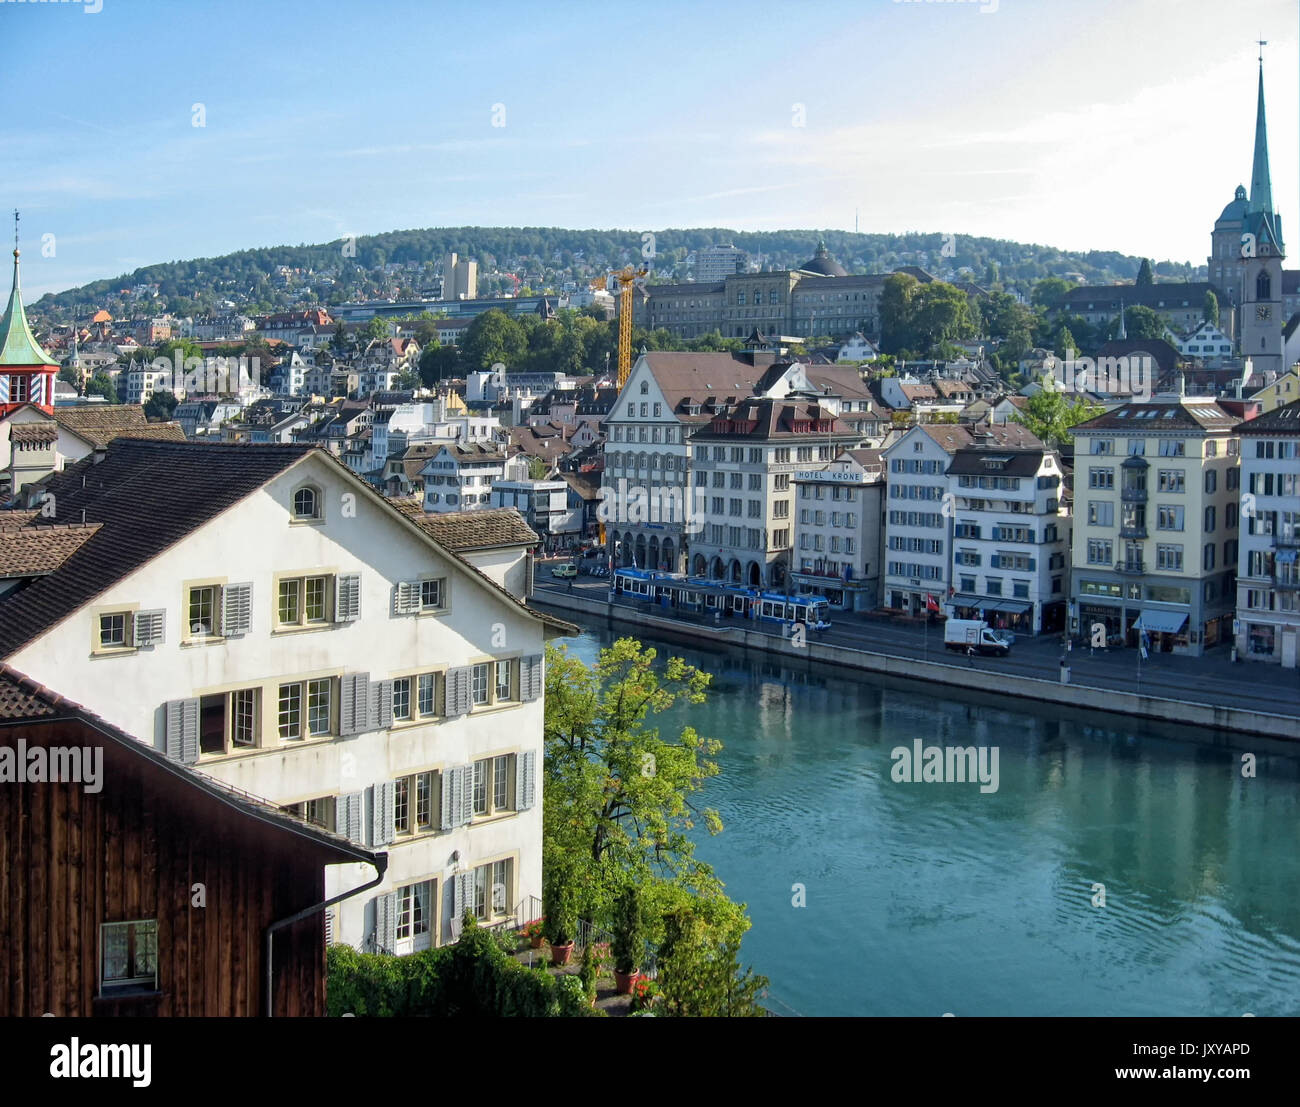 A view of the city center and the Limmat River in Zurich Switzerland from the observation deck on Lindenhof Hill. - Stock Image